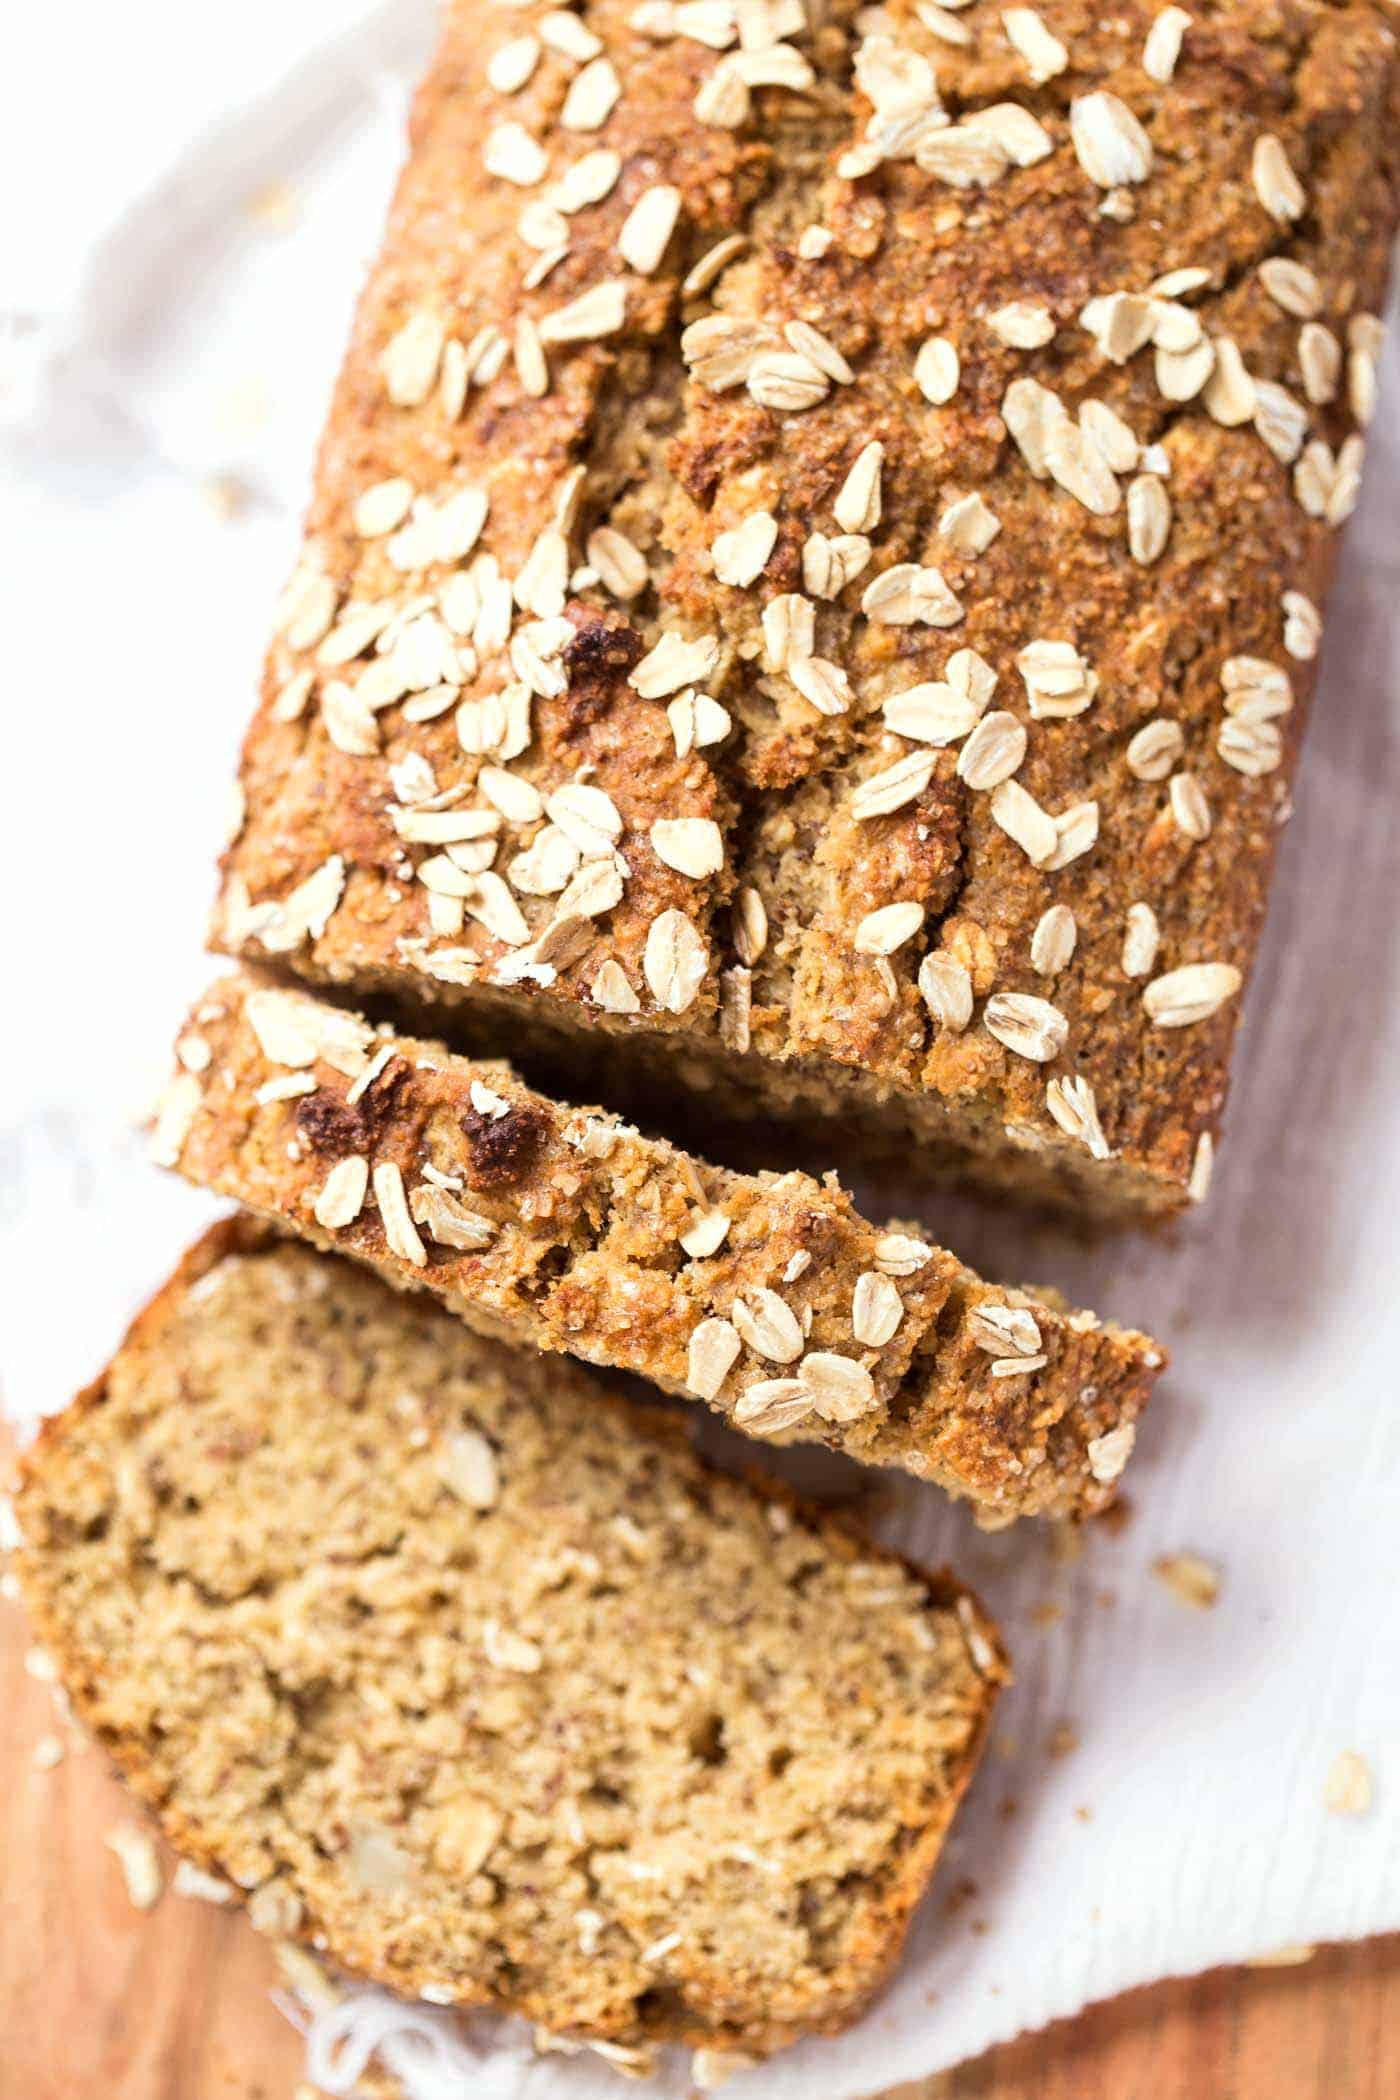 This HEALTHY Honey Oatmeal Banana Bread is packed with nutrient-dense flours, sweetened naturally and uses just one tablespoon of oil!